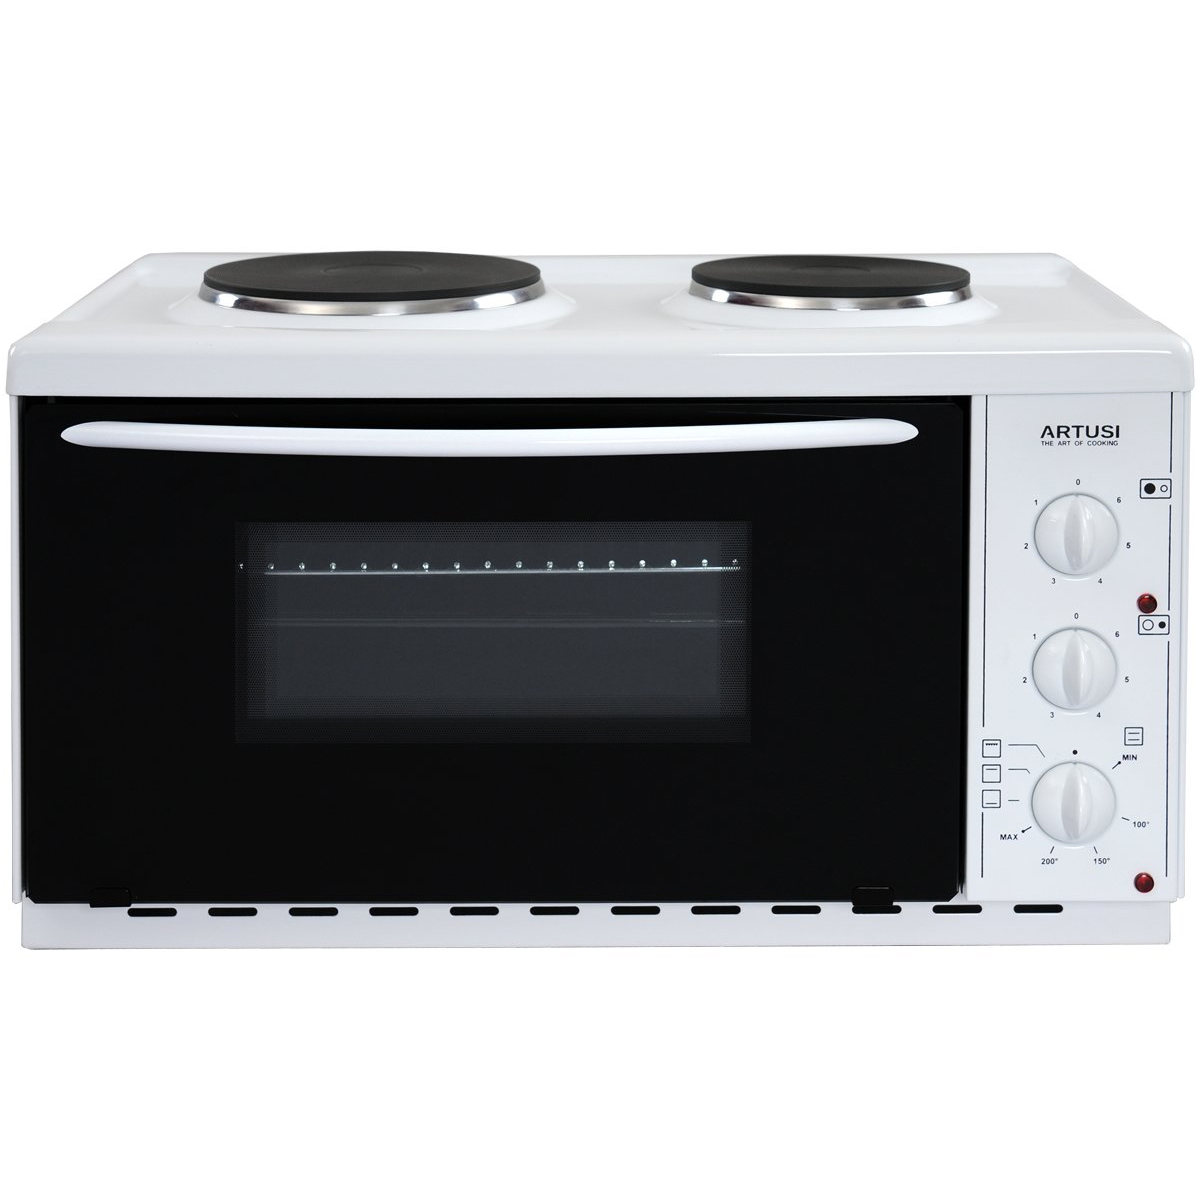 Artusi AOMK1 Vulcan Microwave Oven with Cooktop